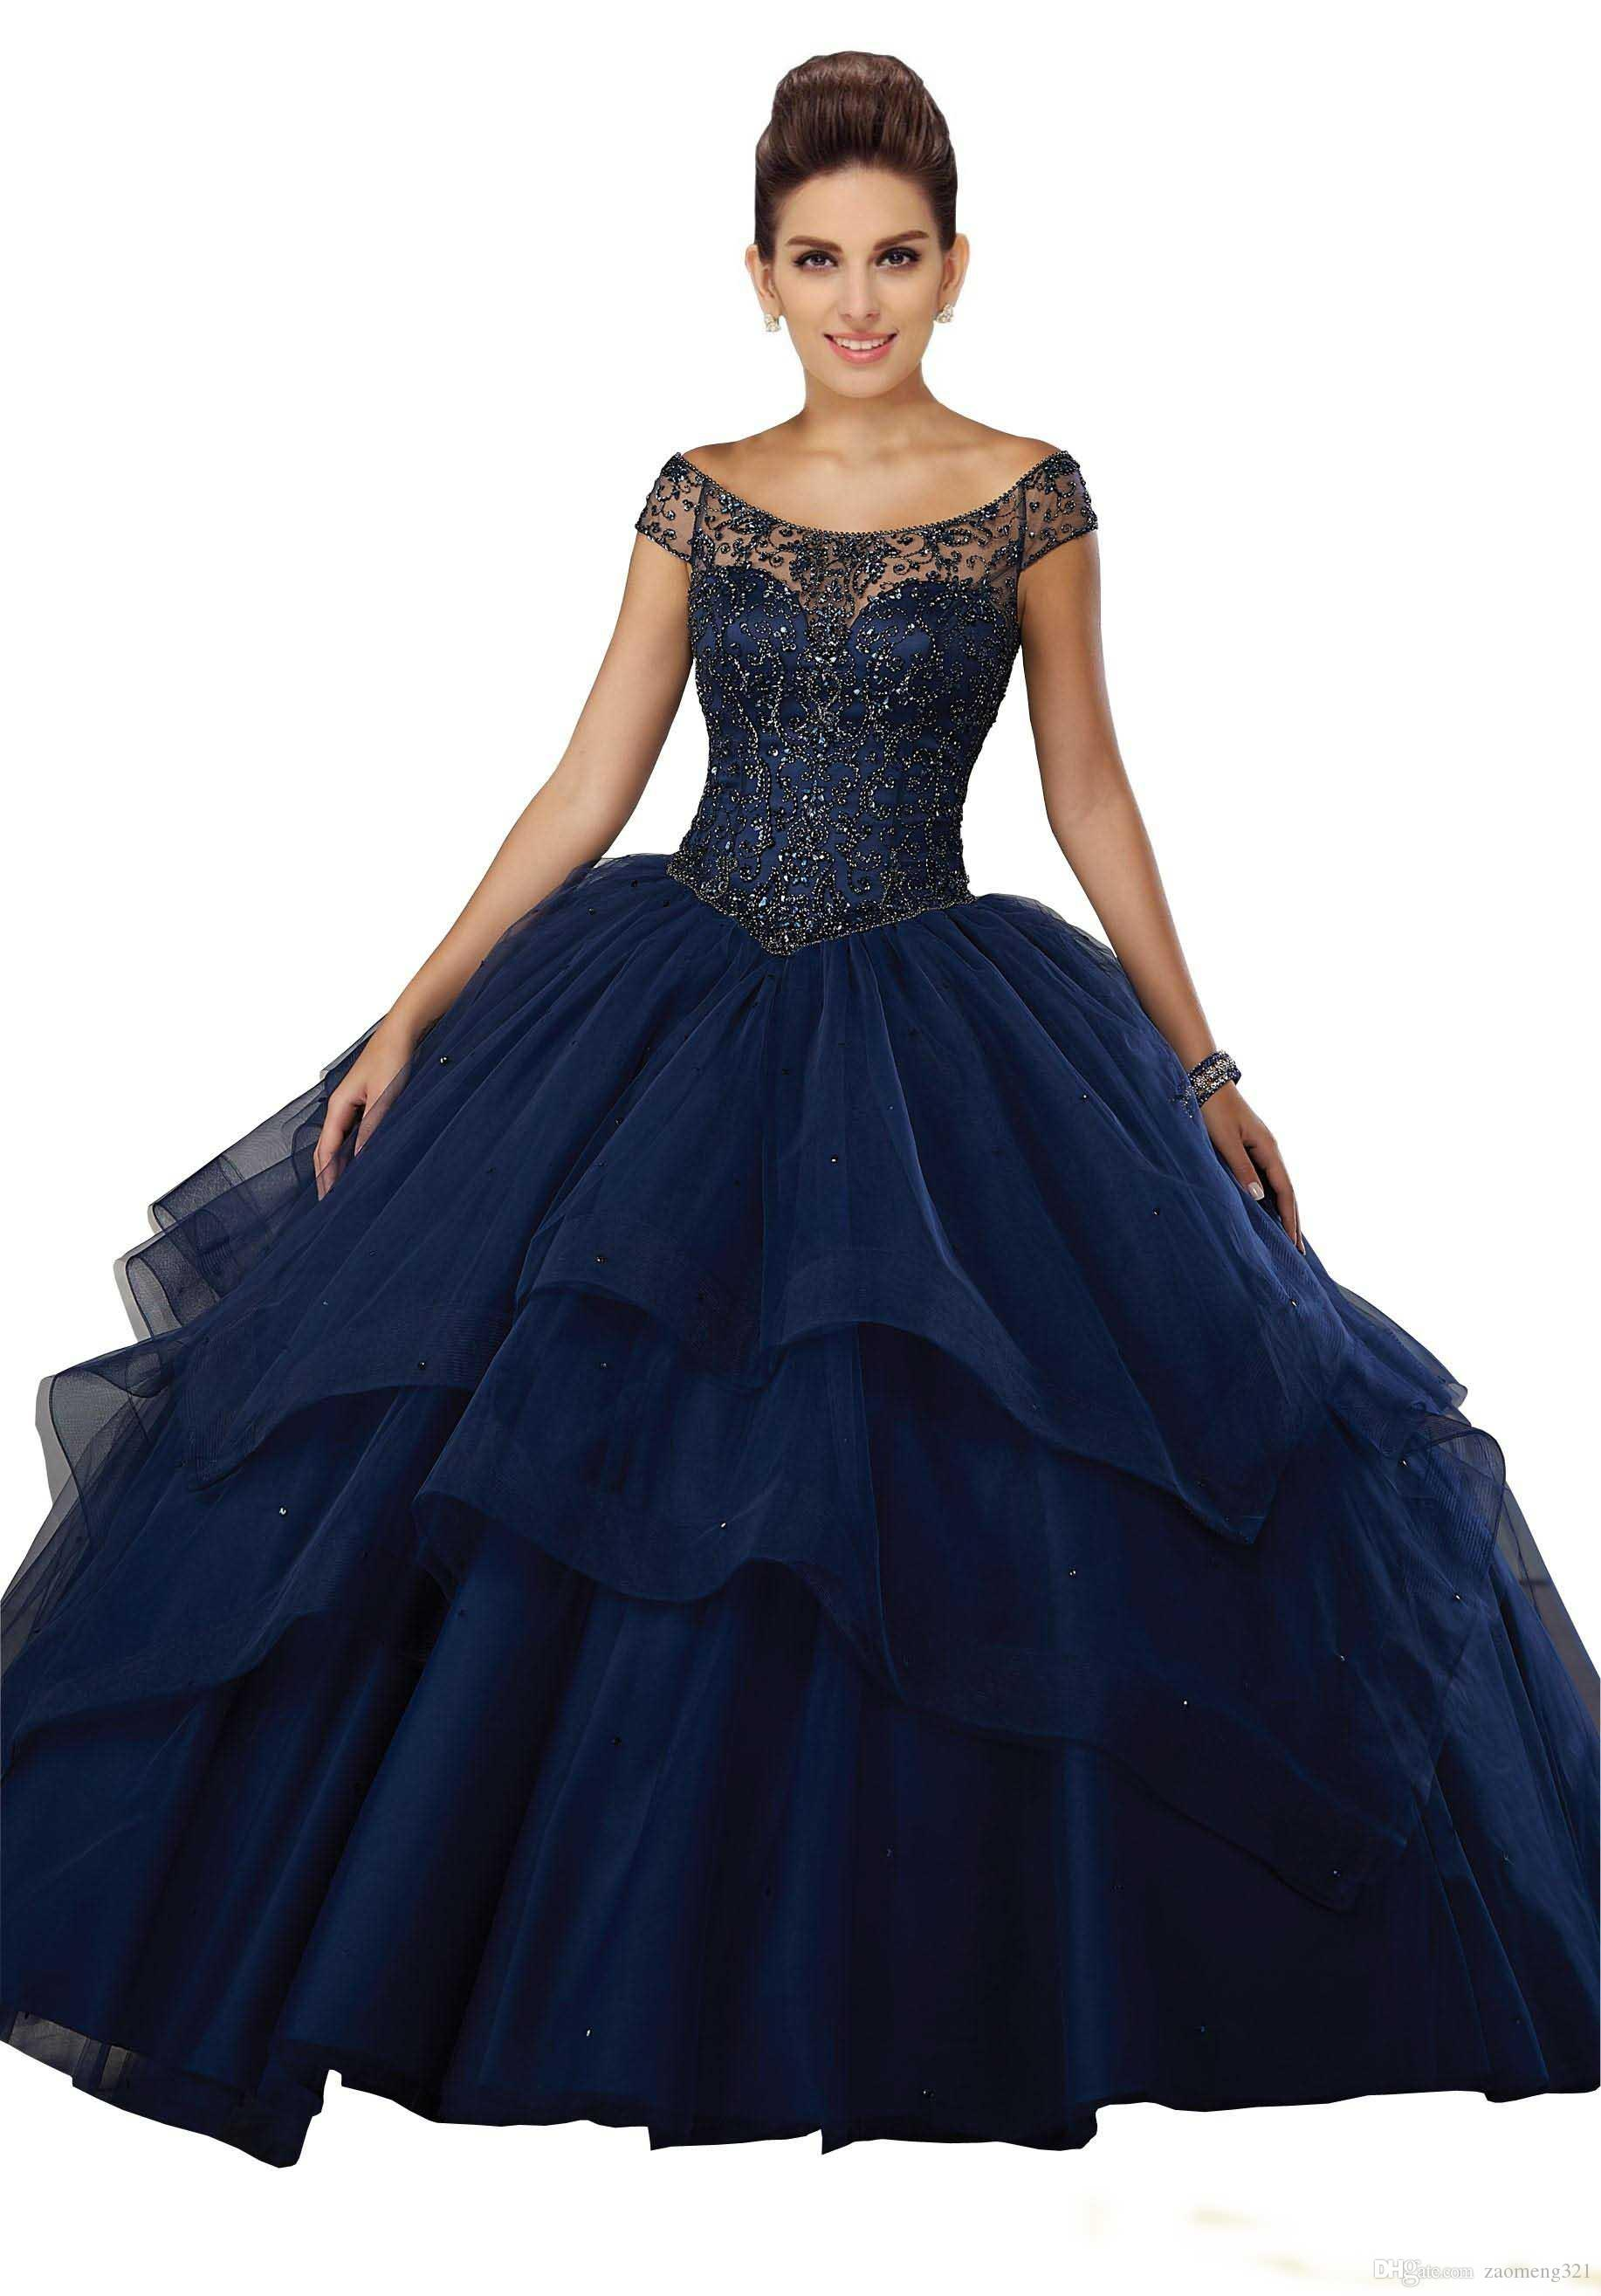 Stunning Navy Blue Sweet 16 Ball Gown Dresses Quinceanera Prom Dress Jewel Sheer Neck With Sleeves Bling Beaded Tulle Ruched Layers Party